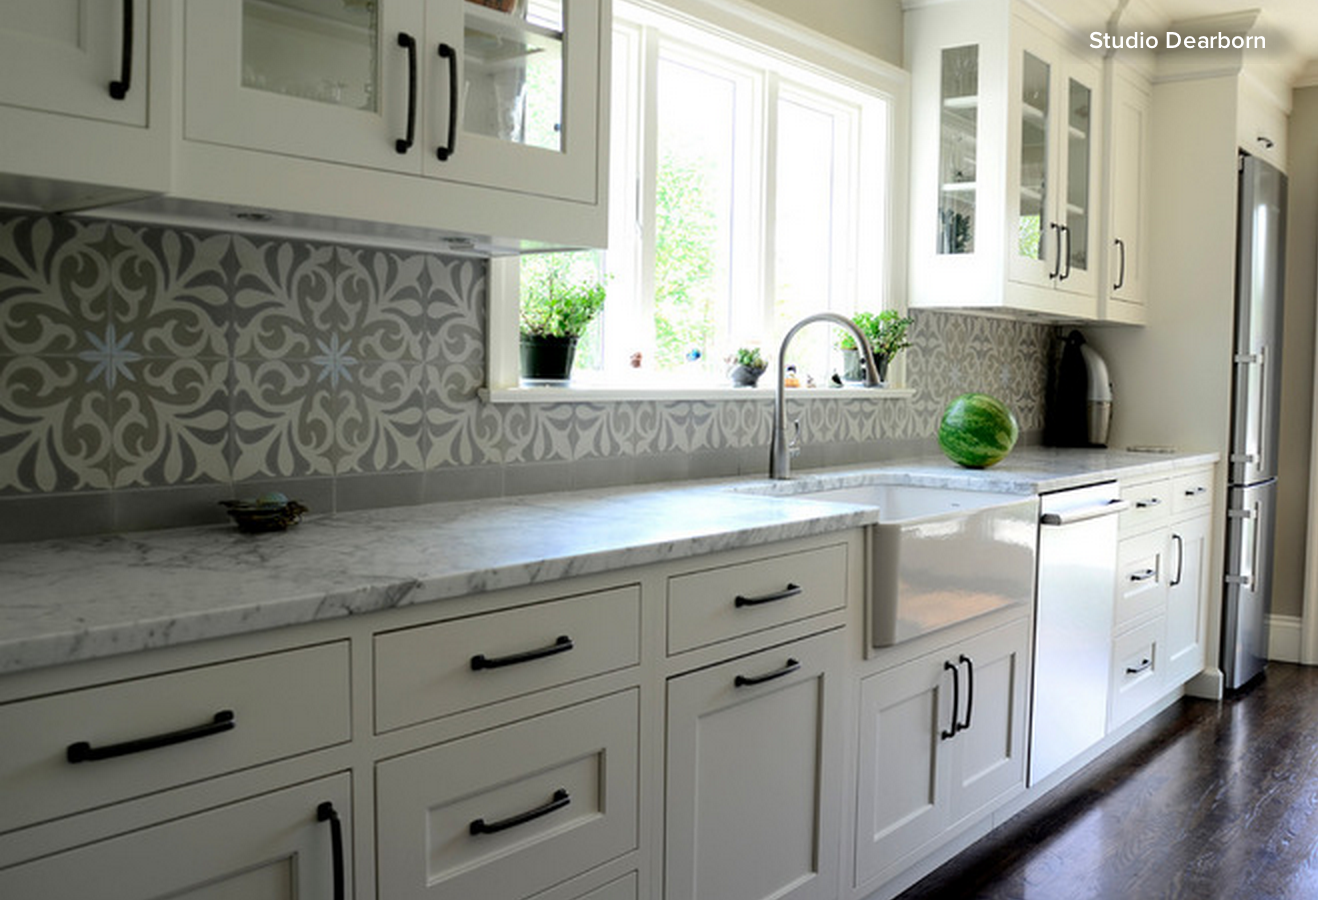 Get the cement tile look a cement tile backsplash adds pizzazz in but the key element tying together the grey stained island and the marble countertop to the rest of the space why that cement tile backsplash of course doublecrazyfo Choice Image